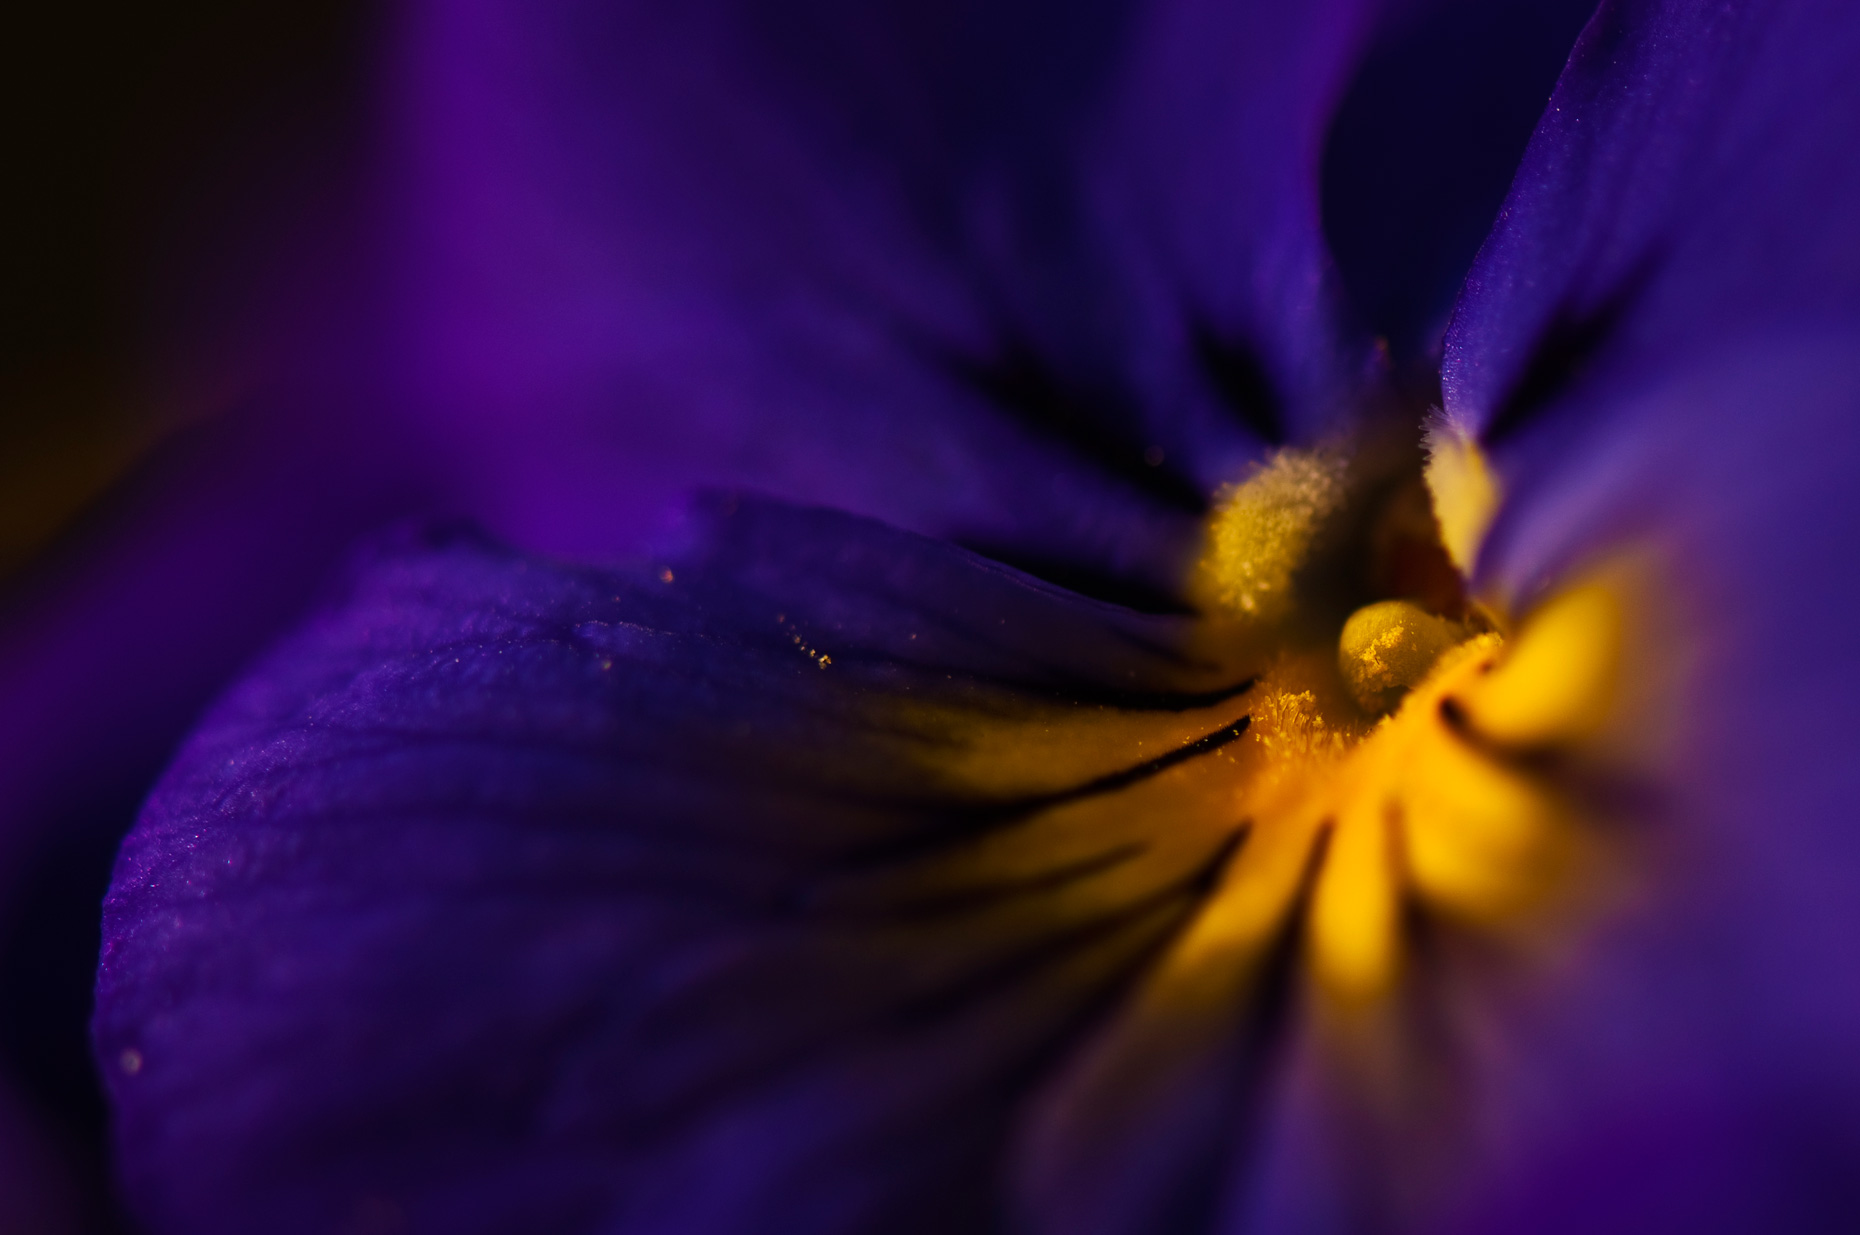 Flower-Photos-Inside-the-Pansy-Laria-Saunders.jpg